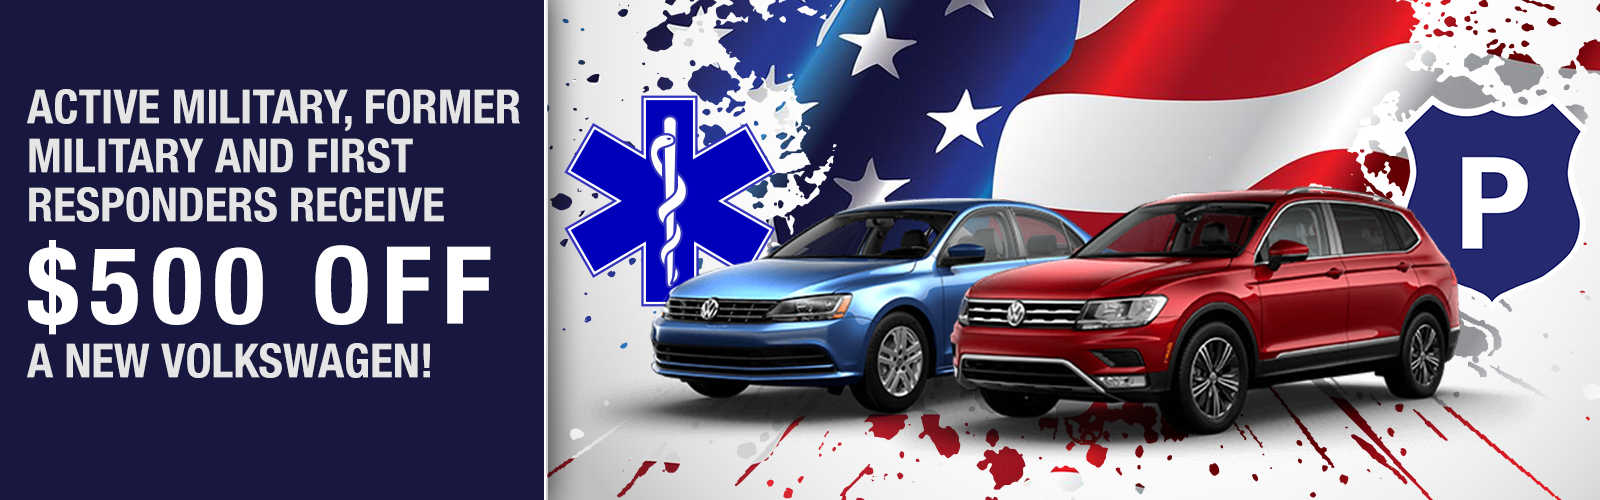 Active Military, Former Military and First Responders Receive $500 Off a New Volkswagen!